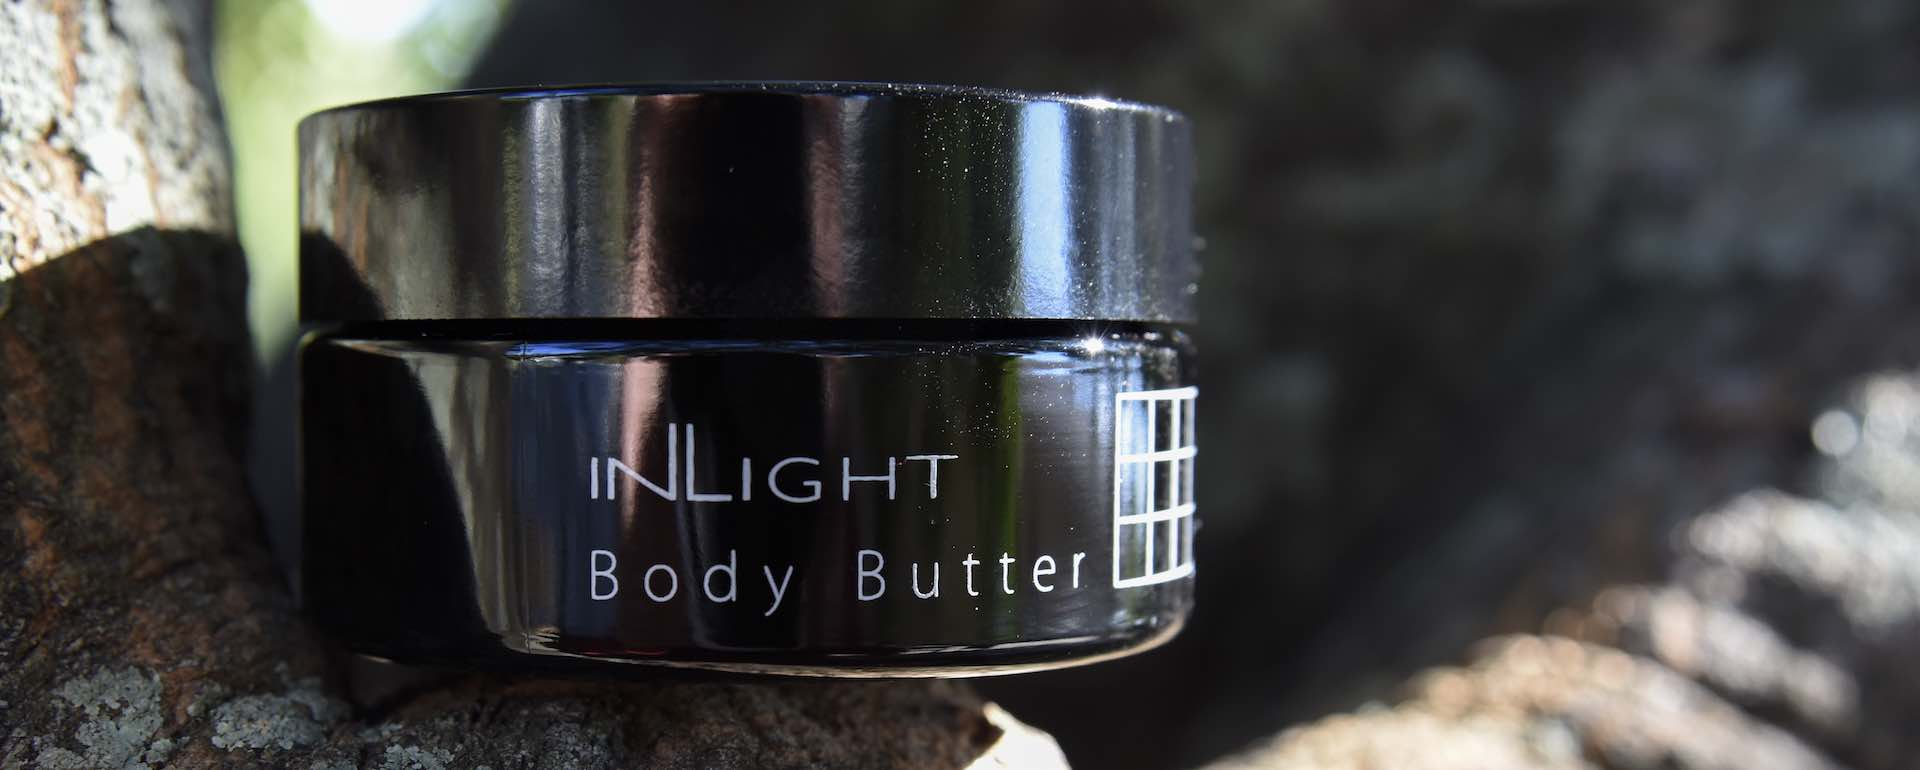 Antioxidant-rich, restorative body balm with uplifting notes of palmarosa and lavender.